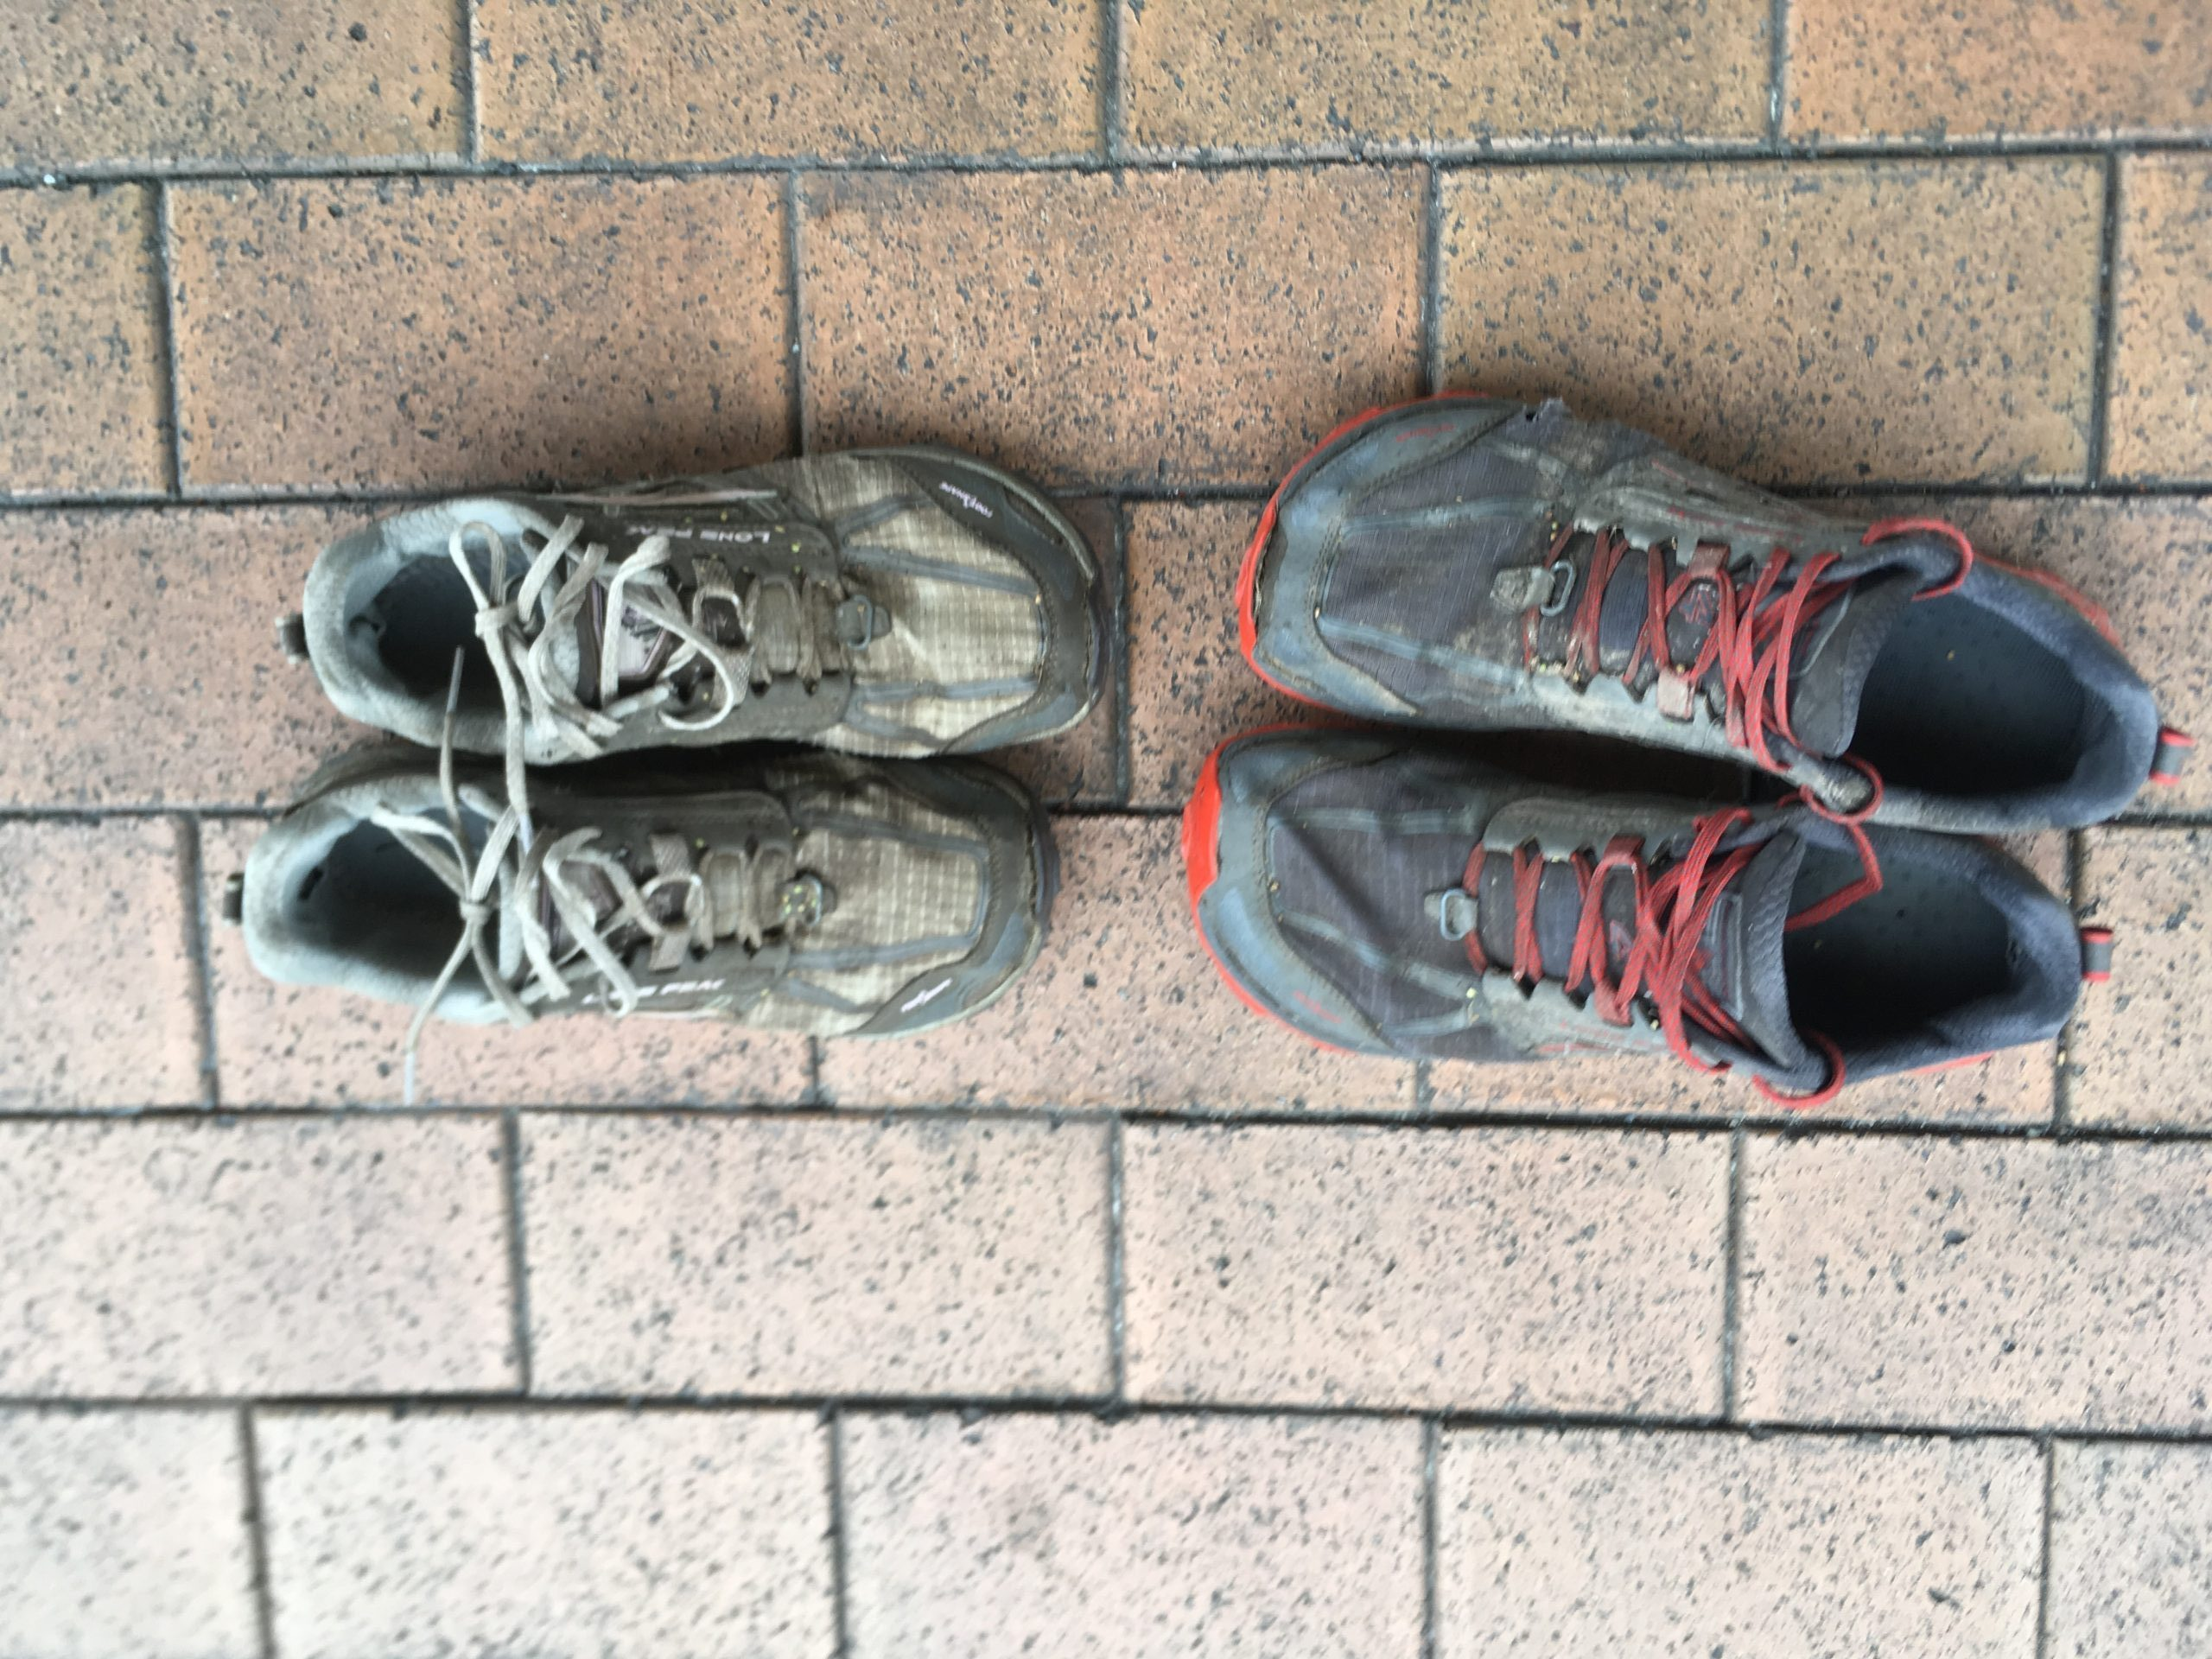 Used Hiking shoes on brick path